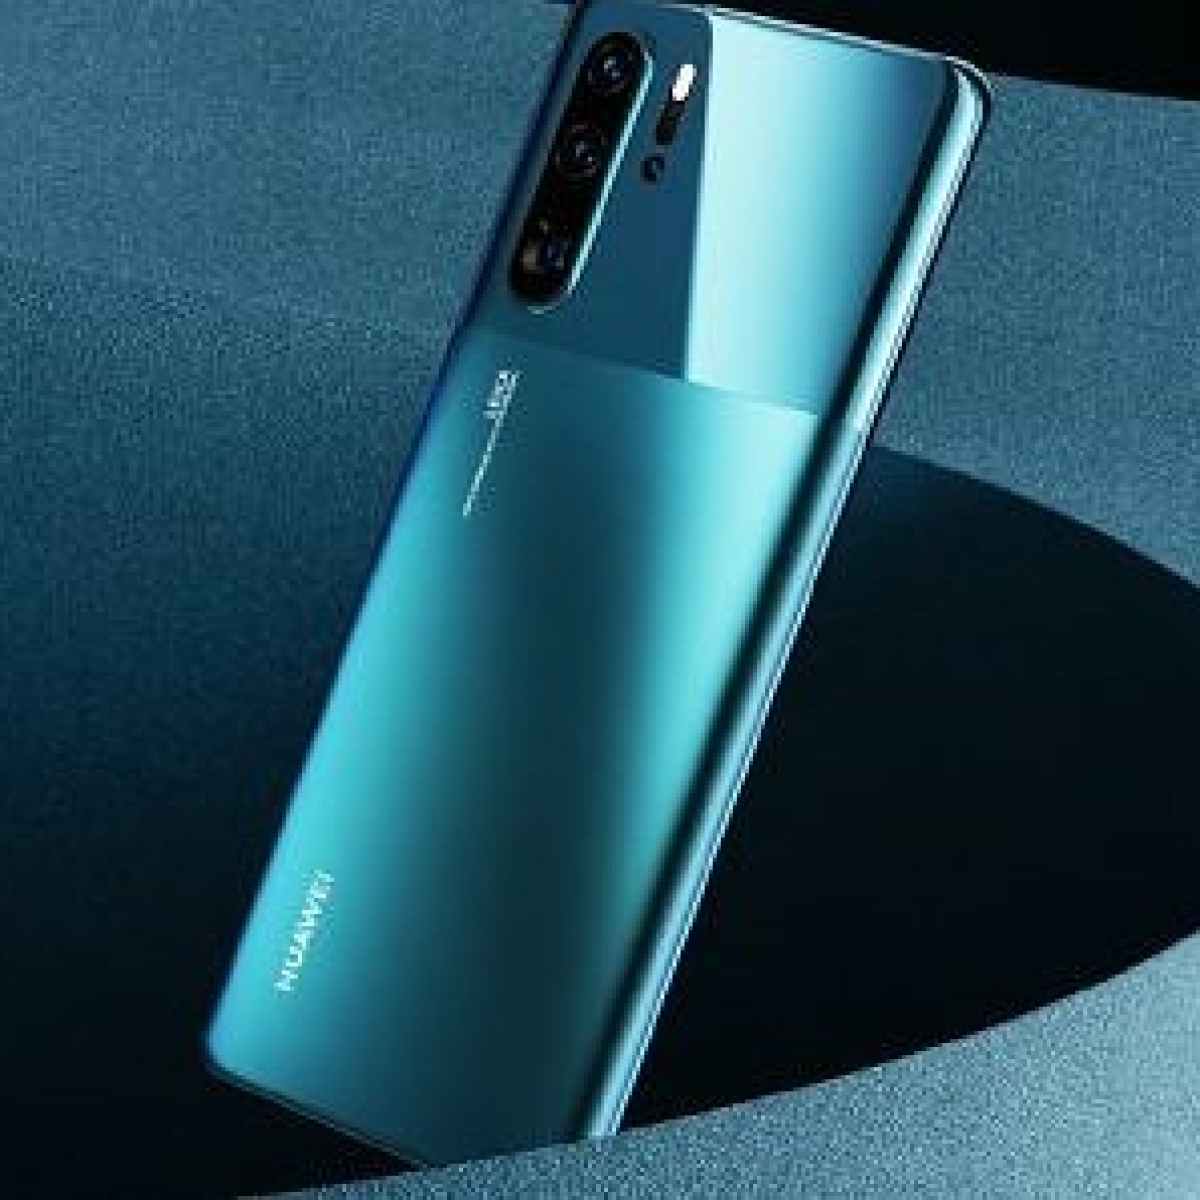 Huawei to unveil P40 series in March without Google services